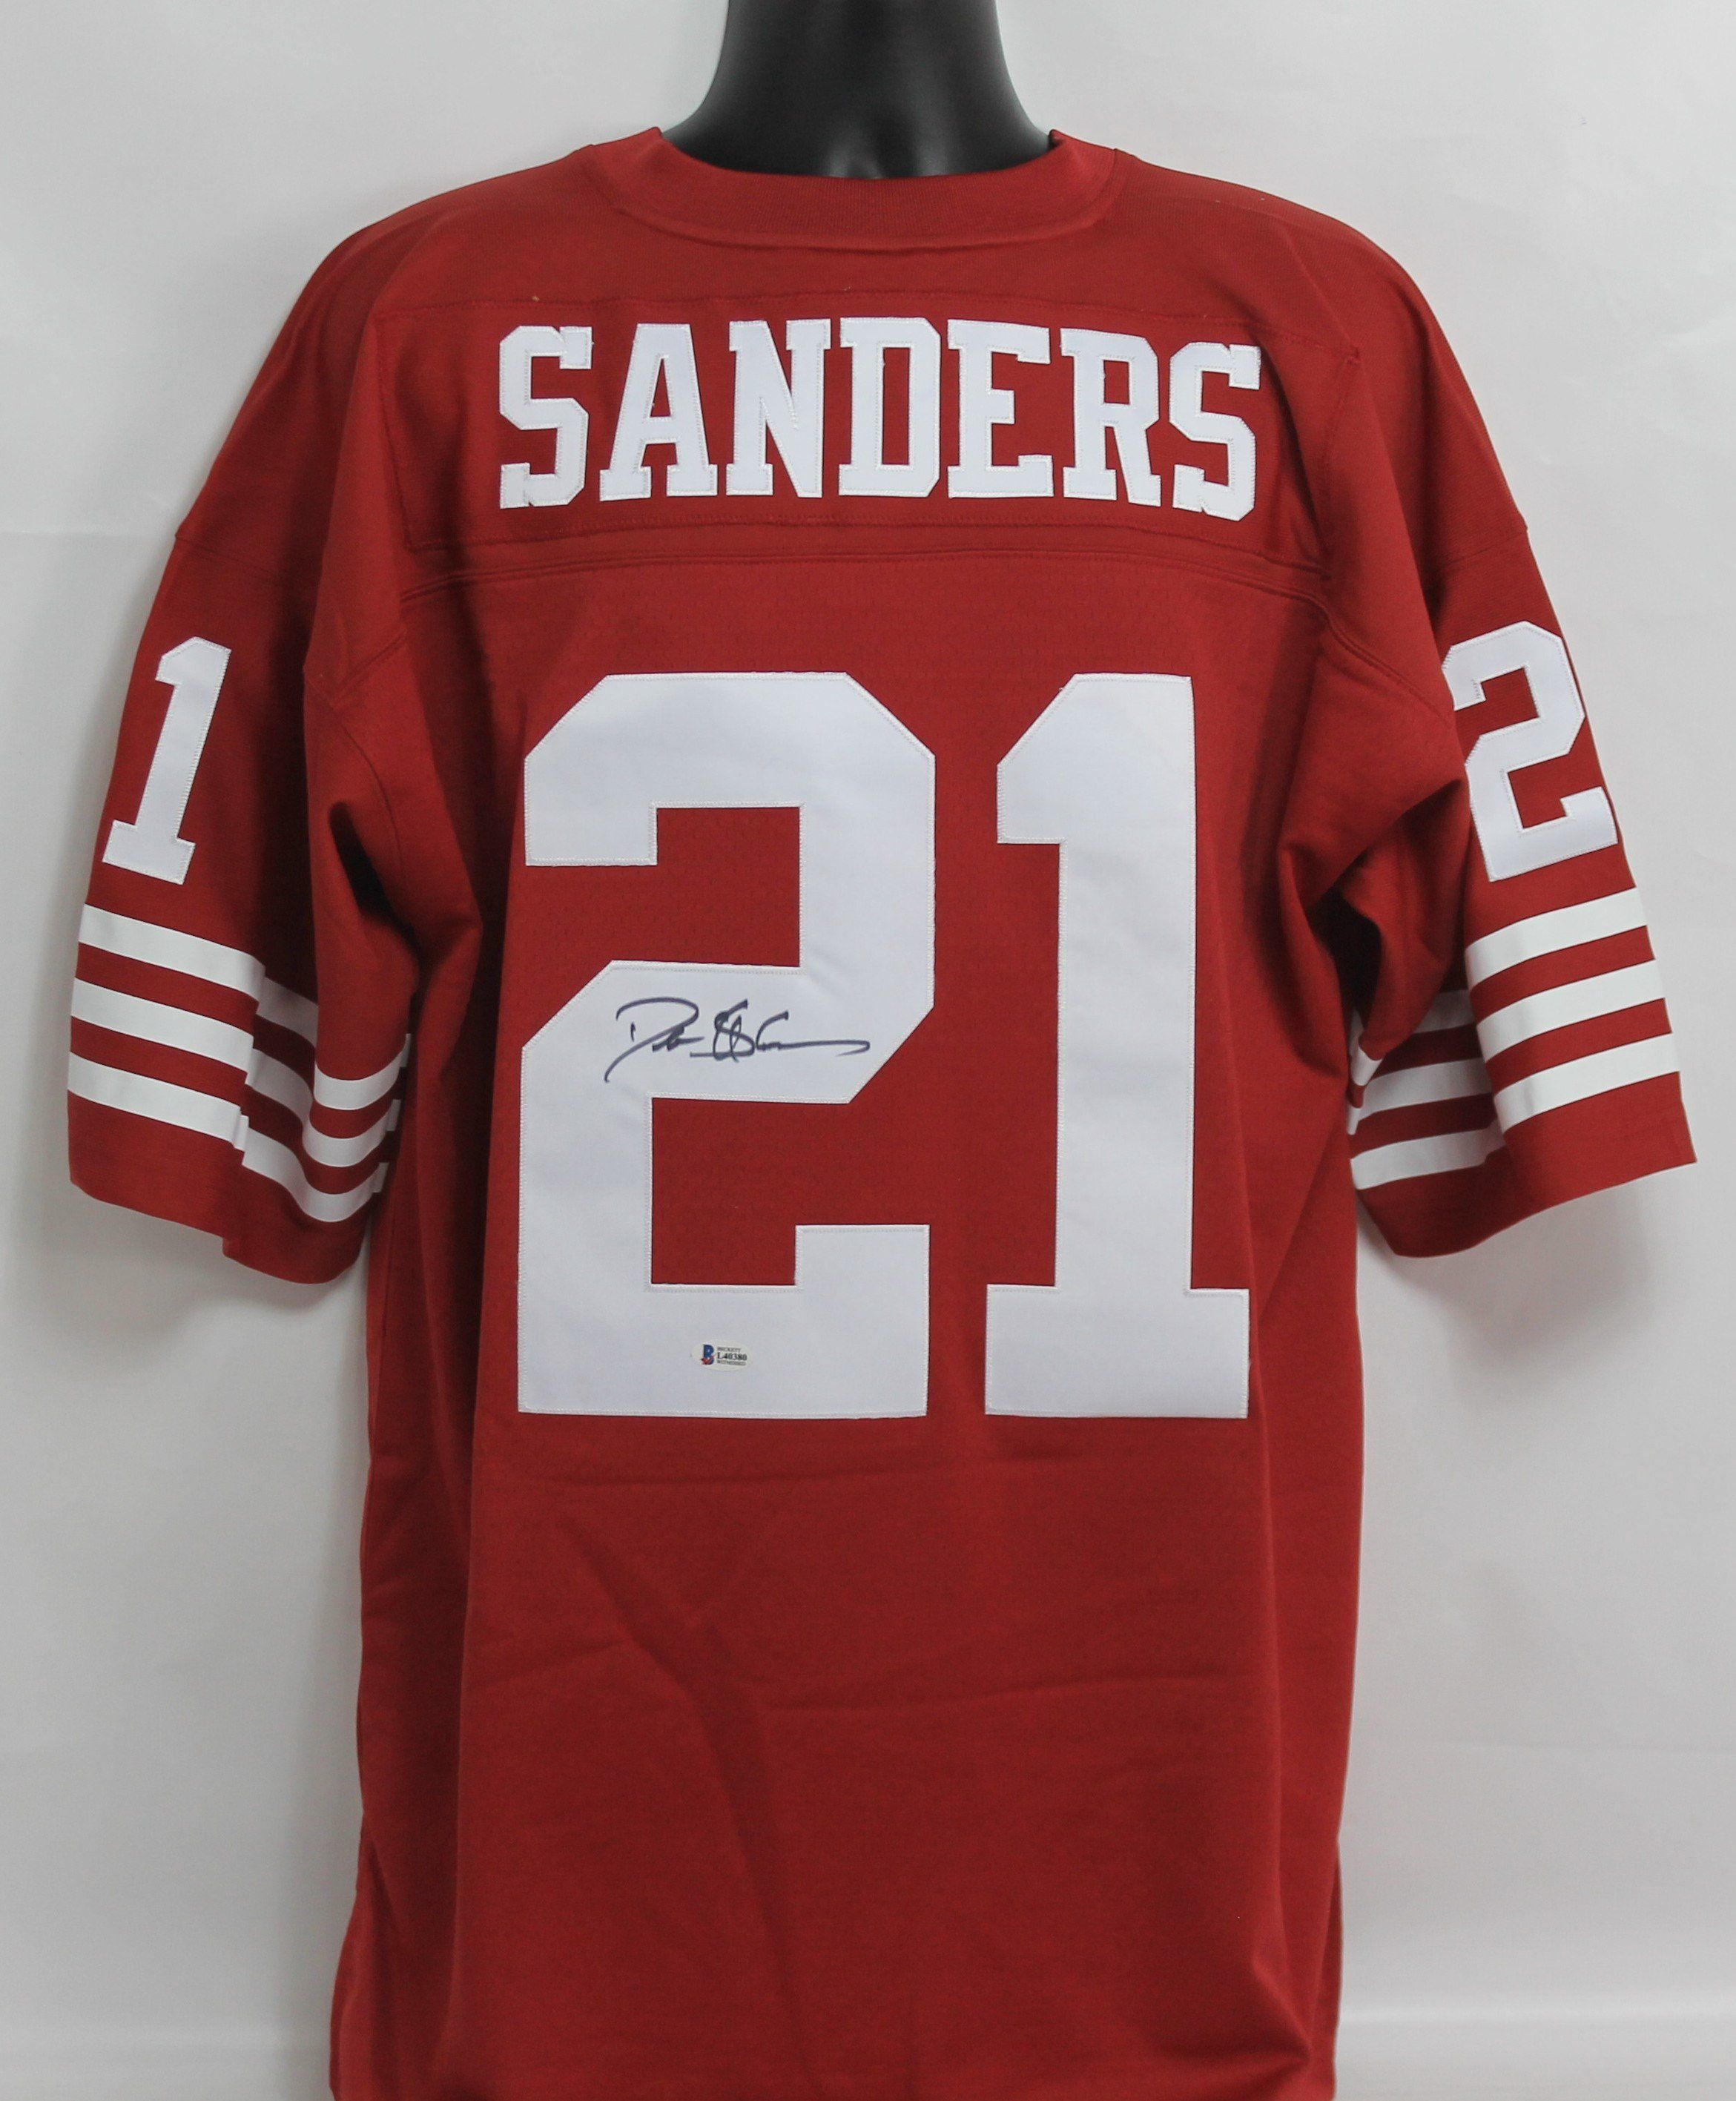 reputable site 6529e 16f56 Deion Sanders Autographed San Francisco 49ers Red Mitchell ...